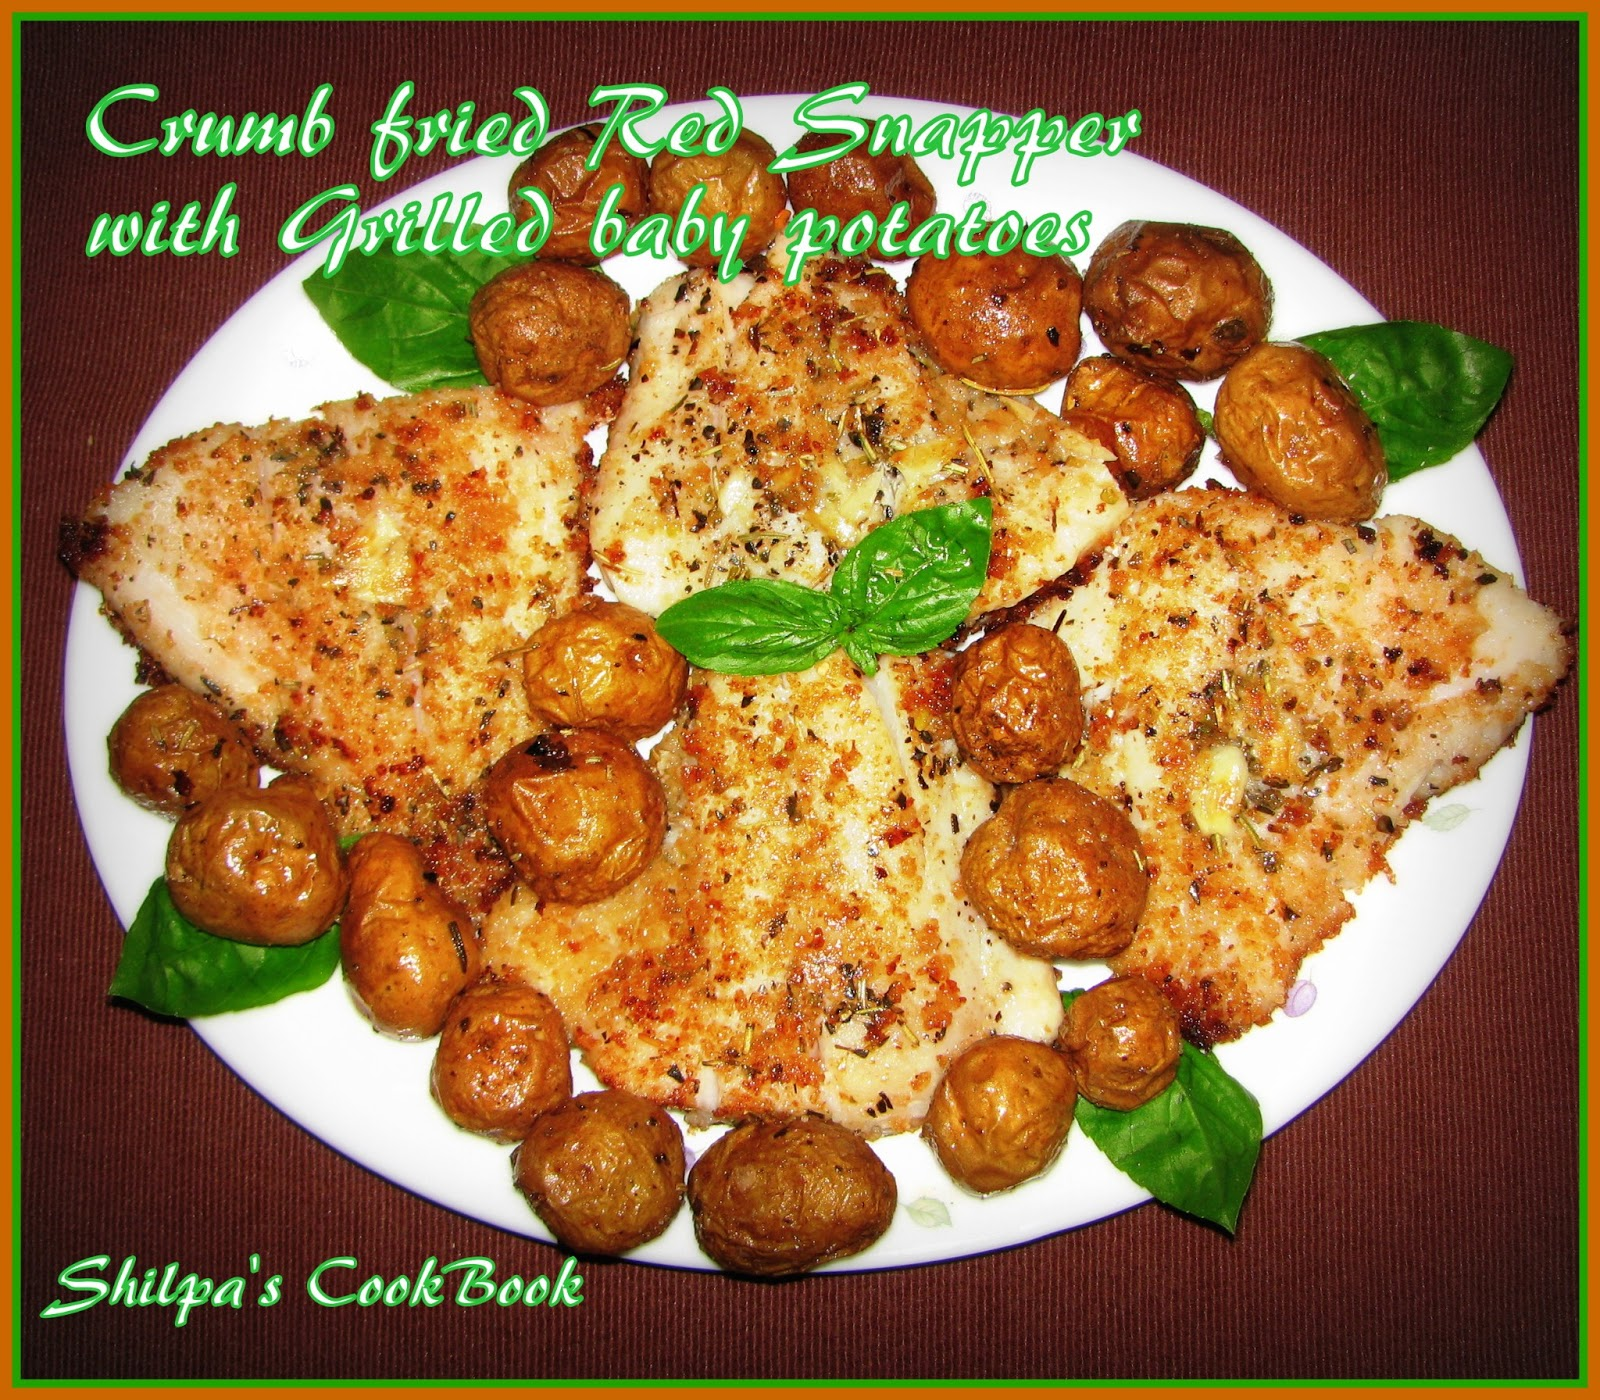 Cook book crumb fried red snapper with grilled baby potatoes crumb fried red snapper with grilled baby potatoes forumfinder Choice Image